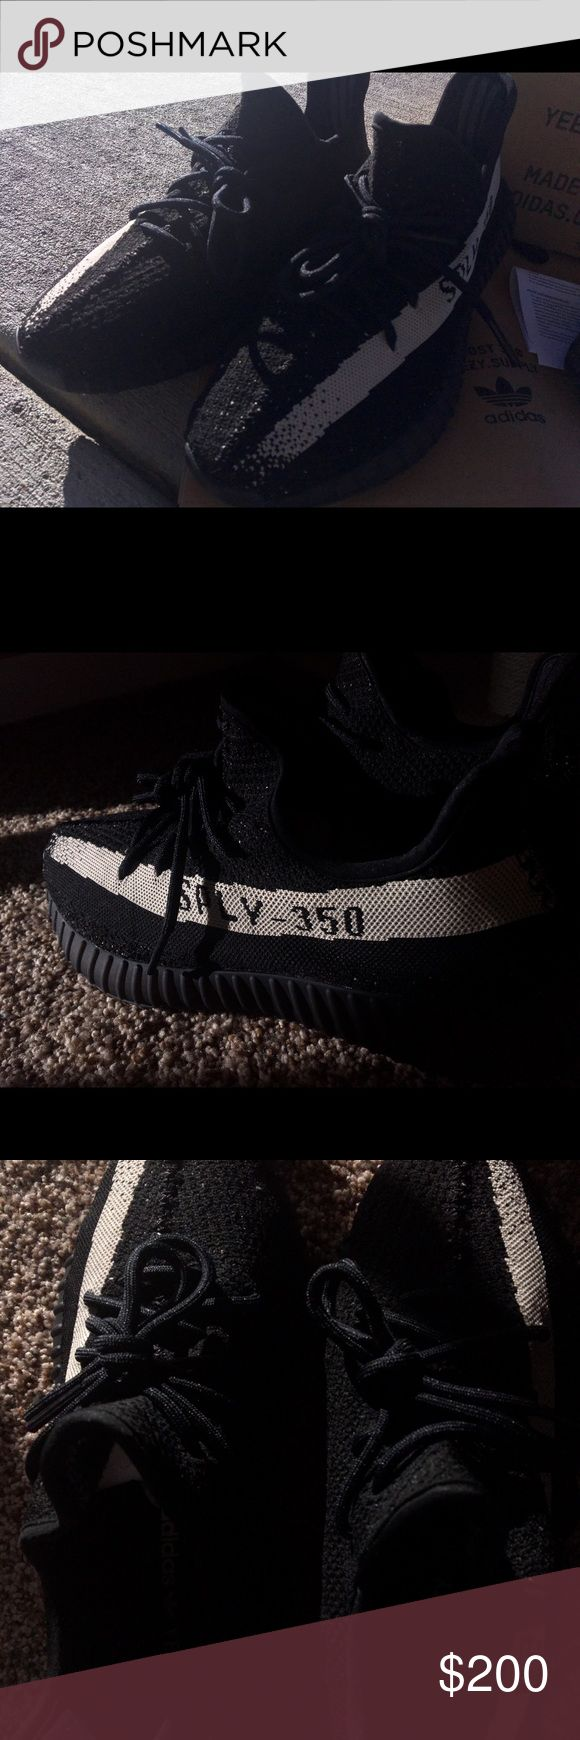 SPLY-350 'Oreos' UA Yeezy Boost 350v2 'Oreo' in perfect condition!  Buy now for a deducted price! Yeezy Shoes Sneakers